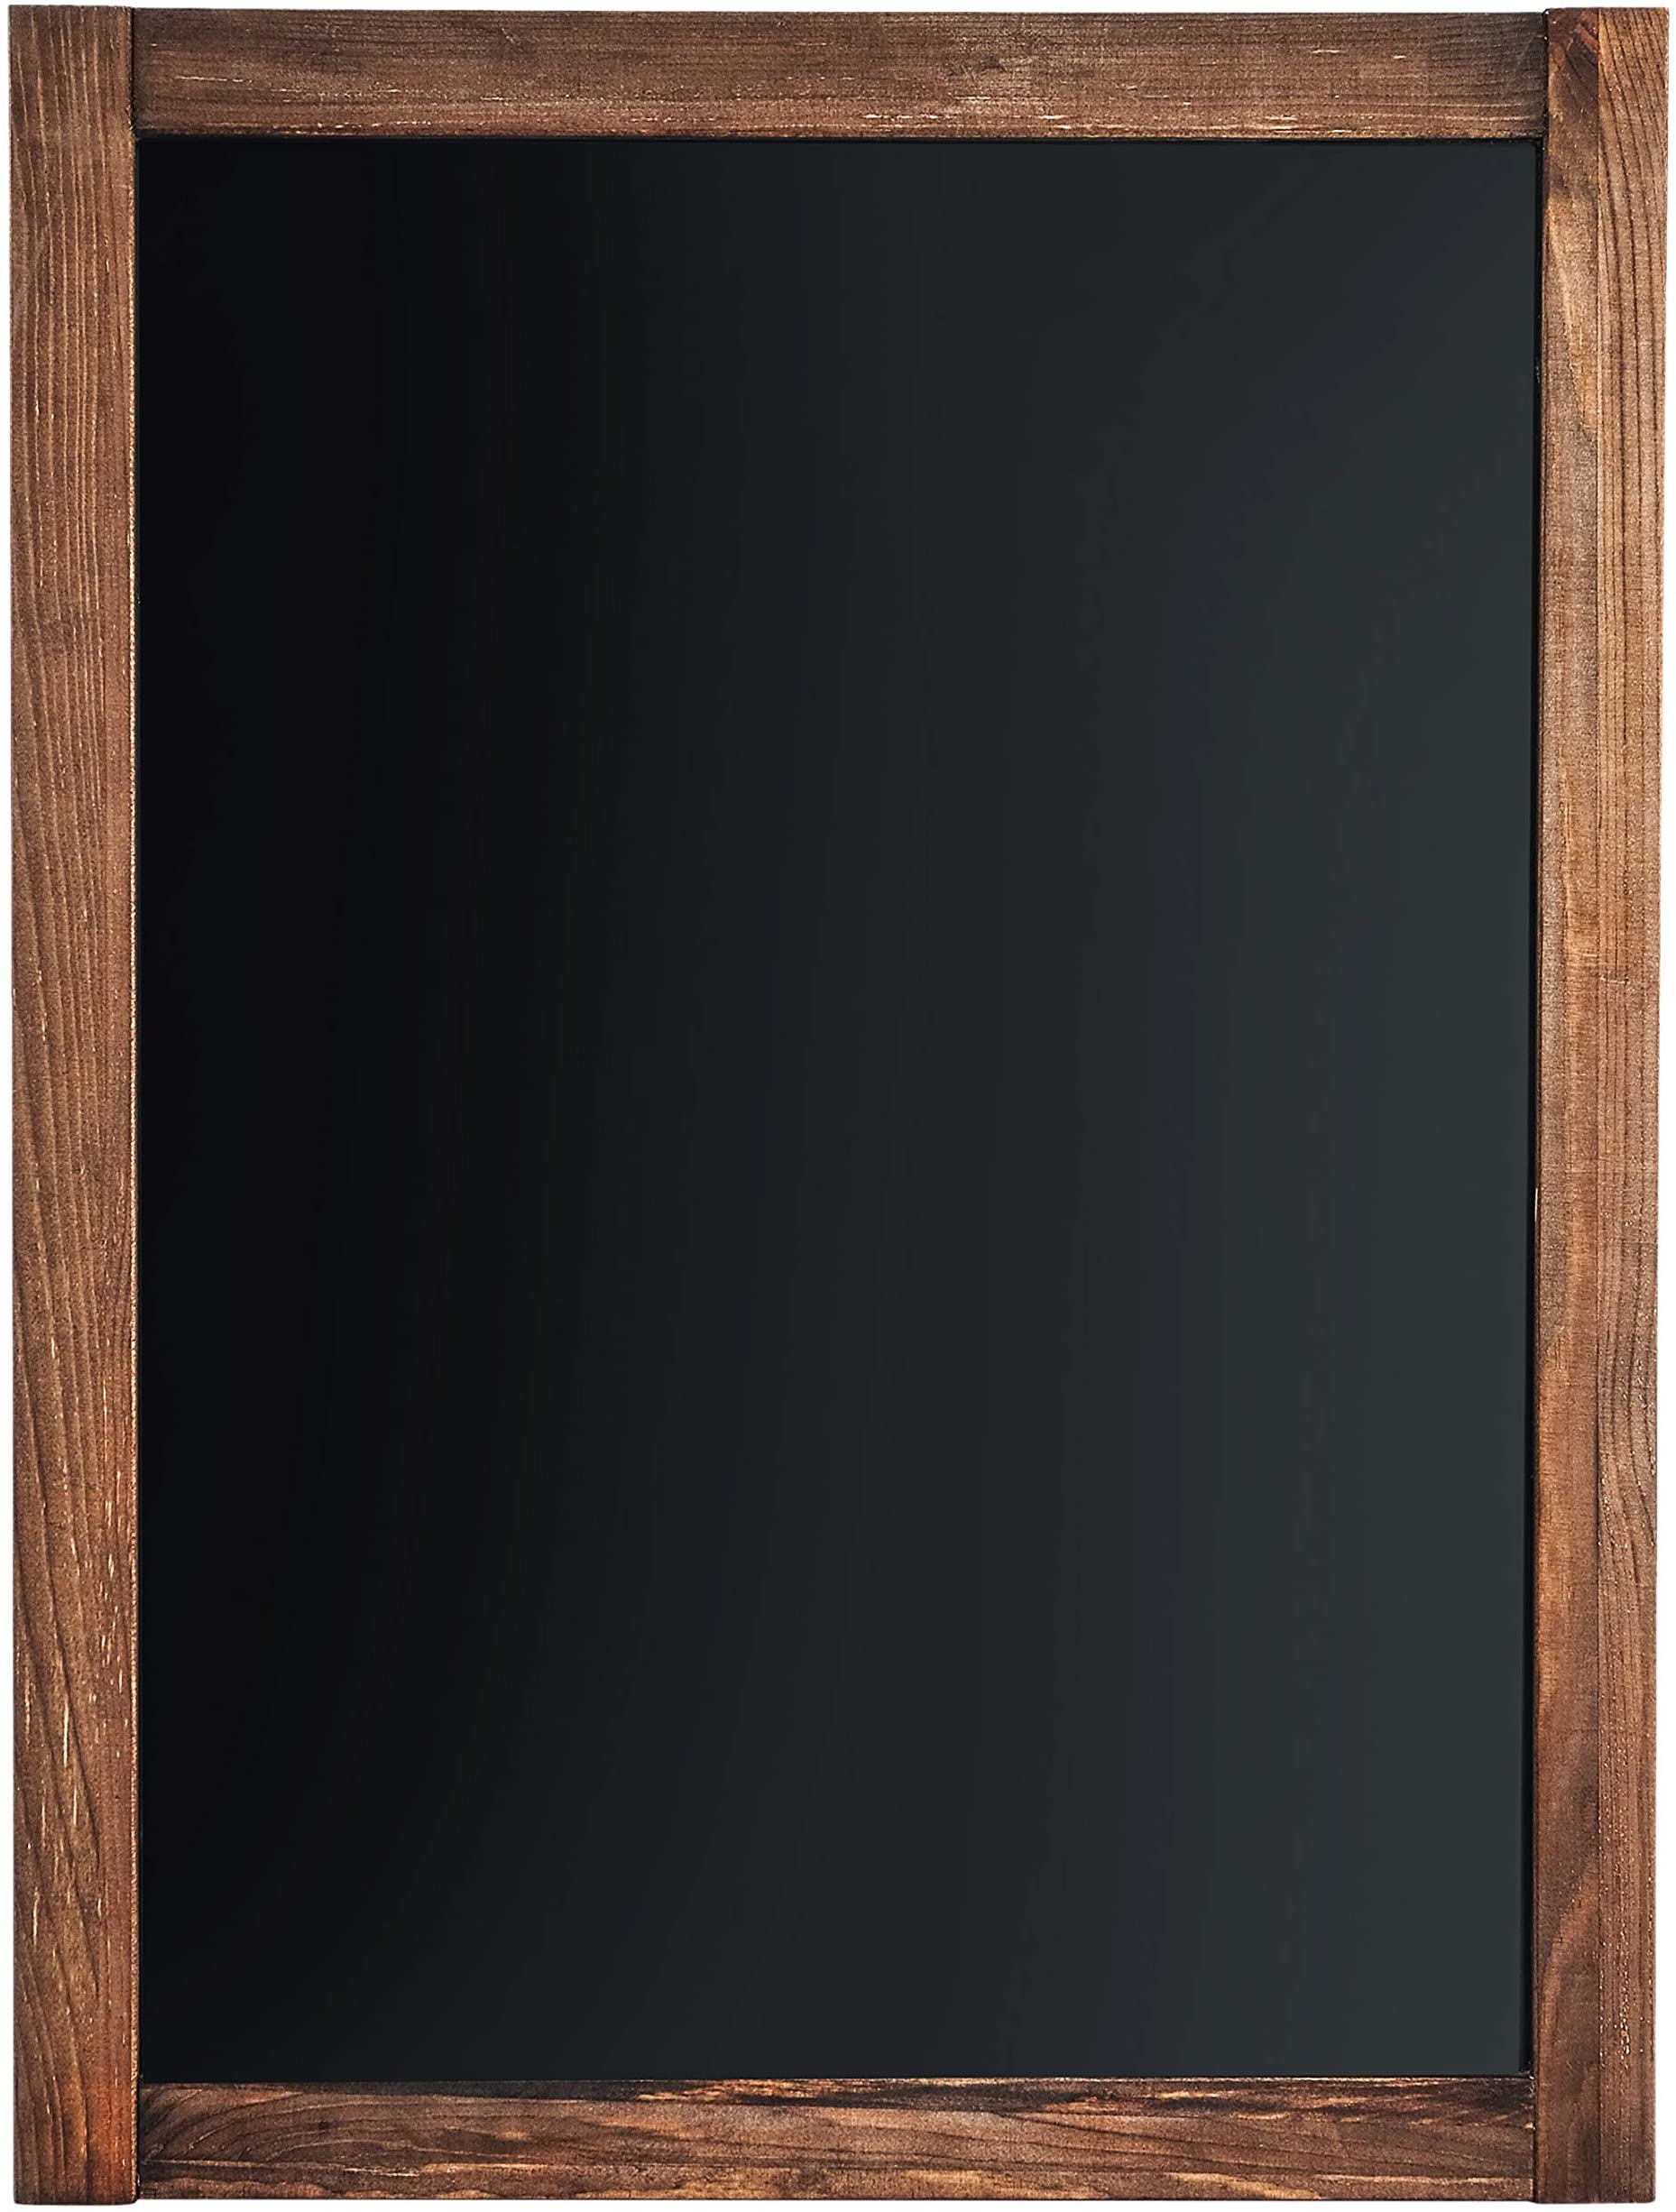 Amazon Com Chalkboard Magnetic Non Porous Framed Vintage Decor Chalk Board For Wedding Kitchen Bar Restaurant Menu Home Sign 18 X 24 Inches Wall Mounted Large Office Products